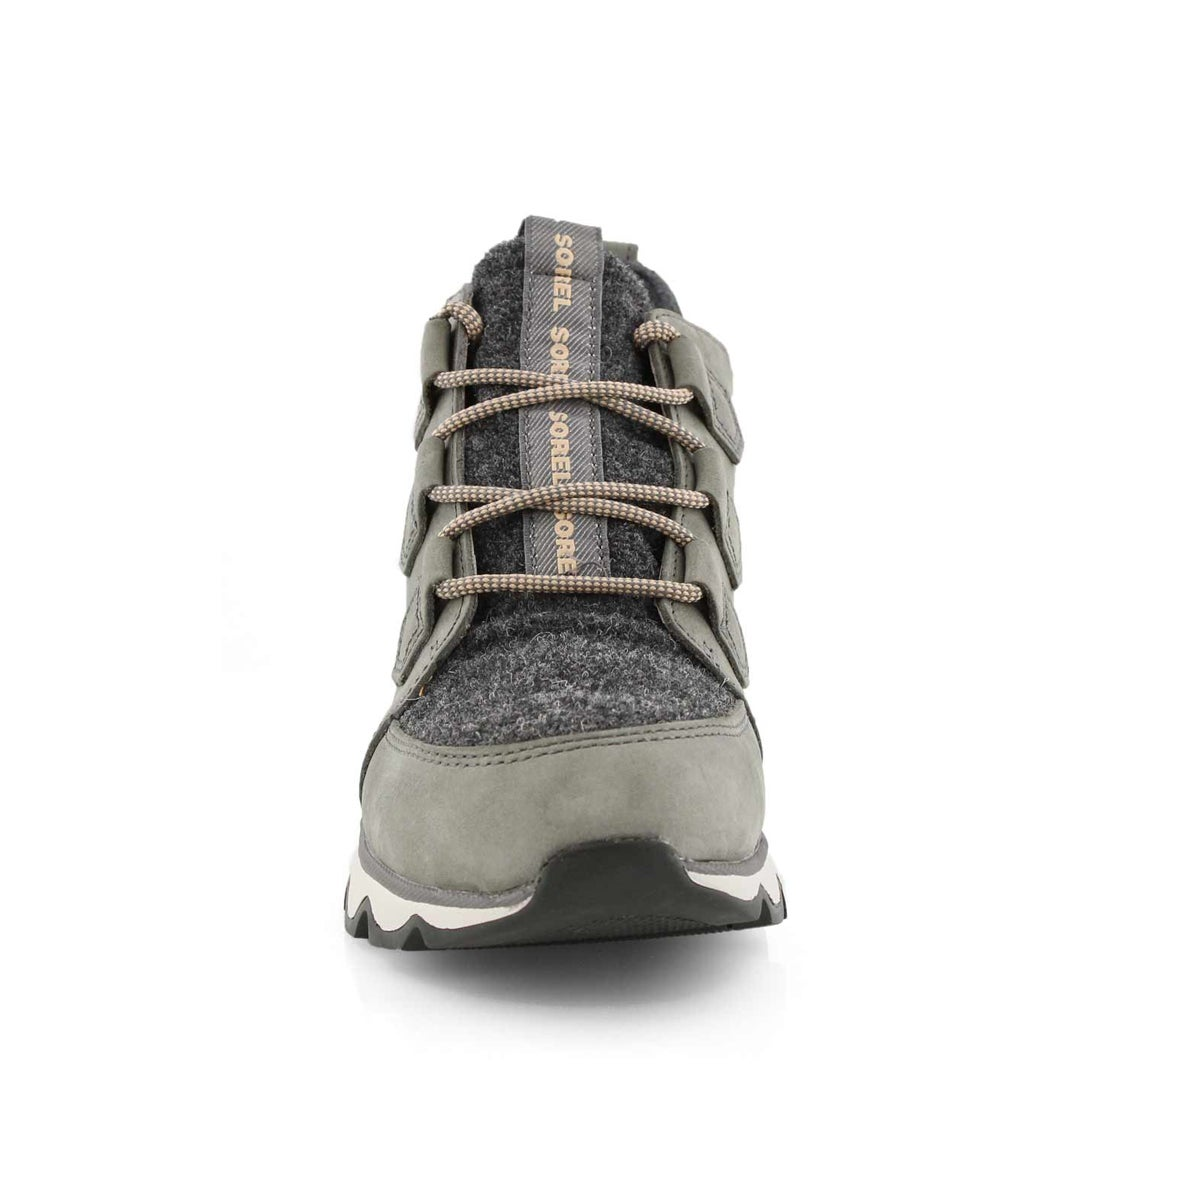 Lds Kinetic Caribou quarry wp ankle boot